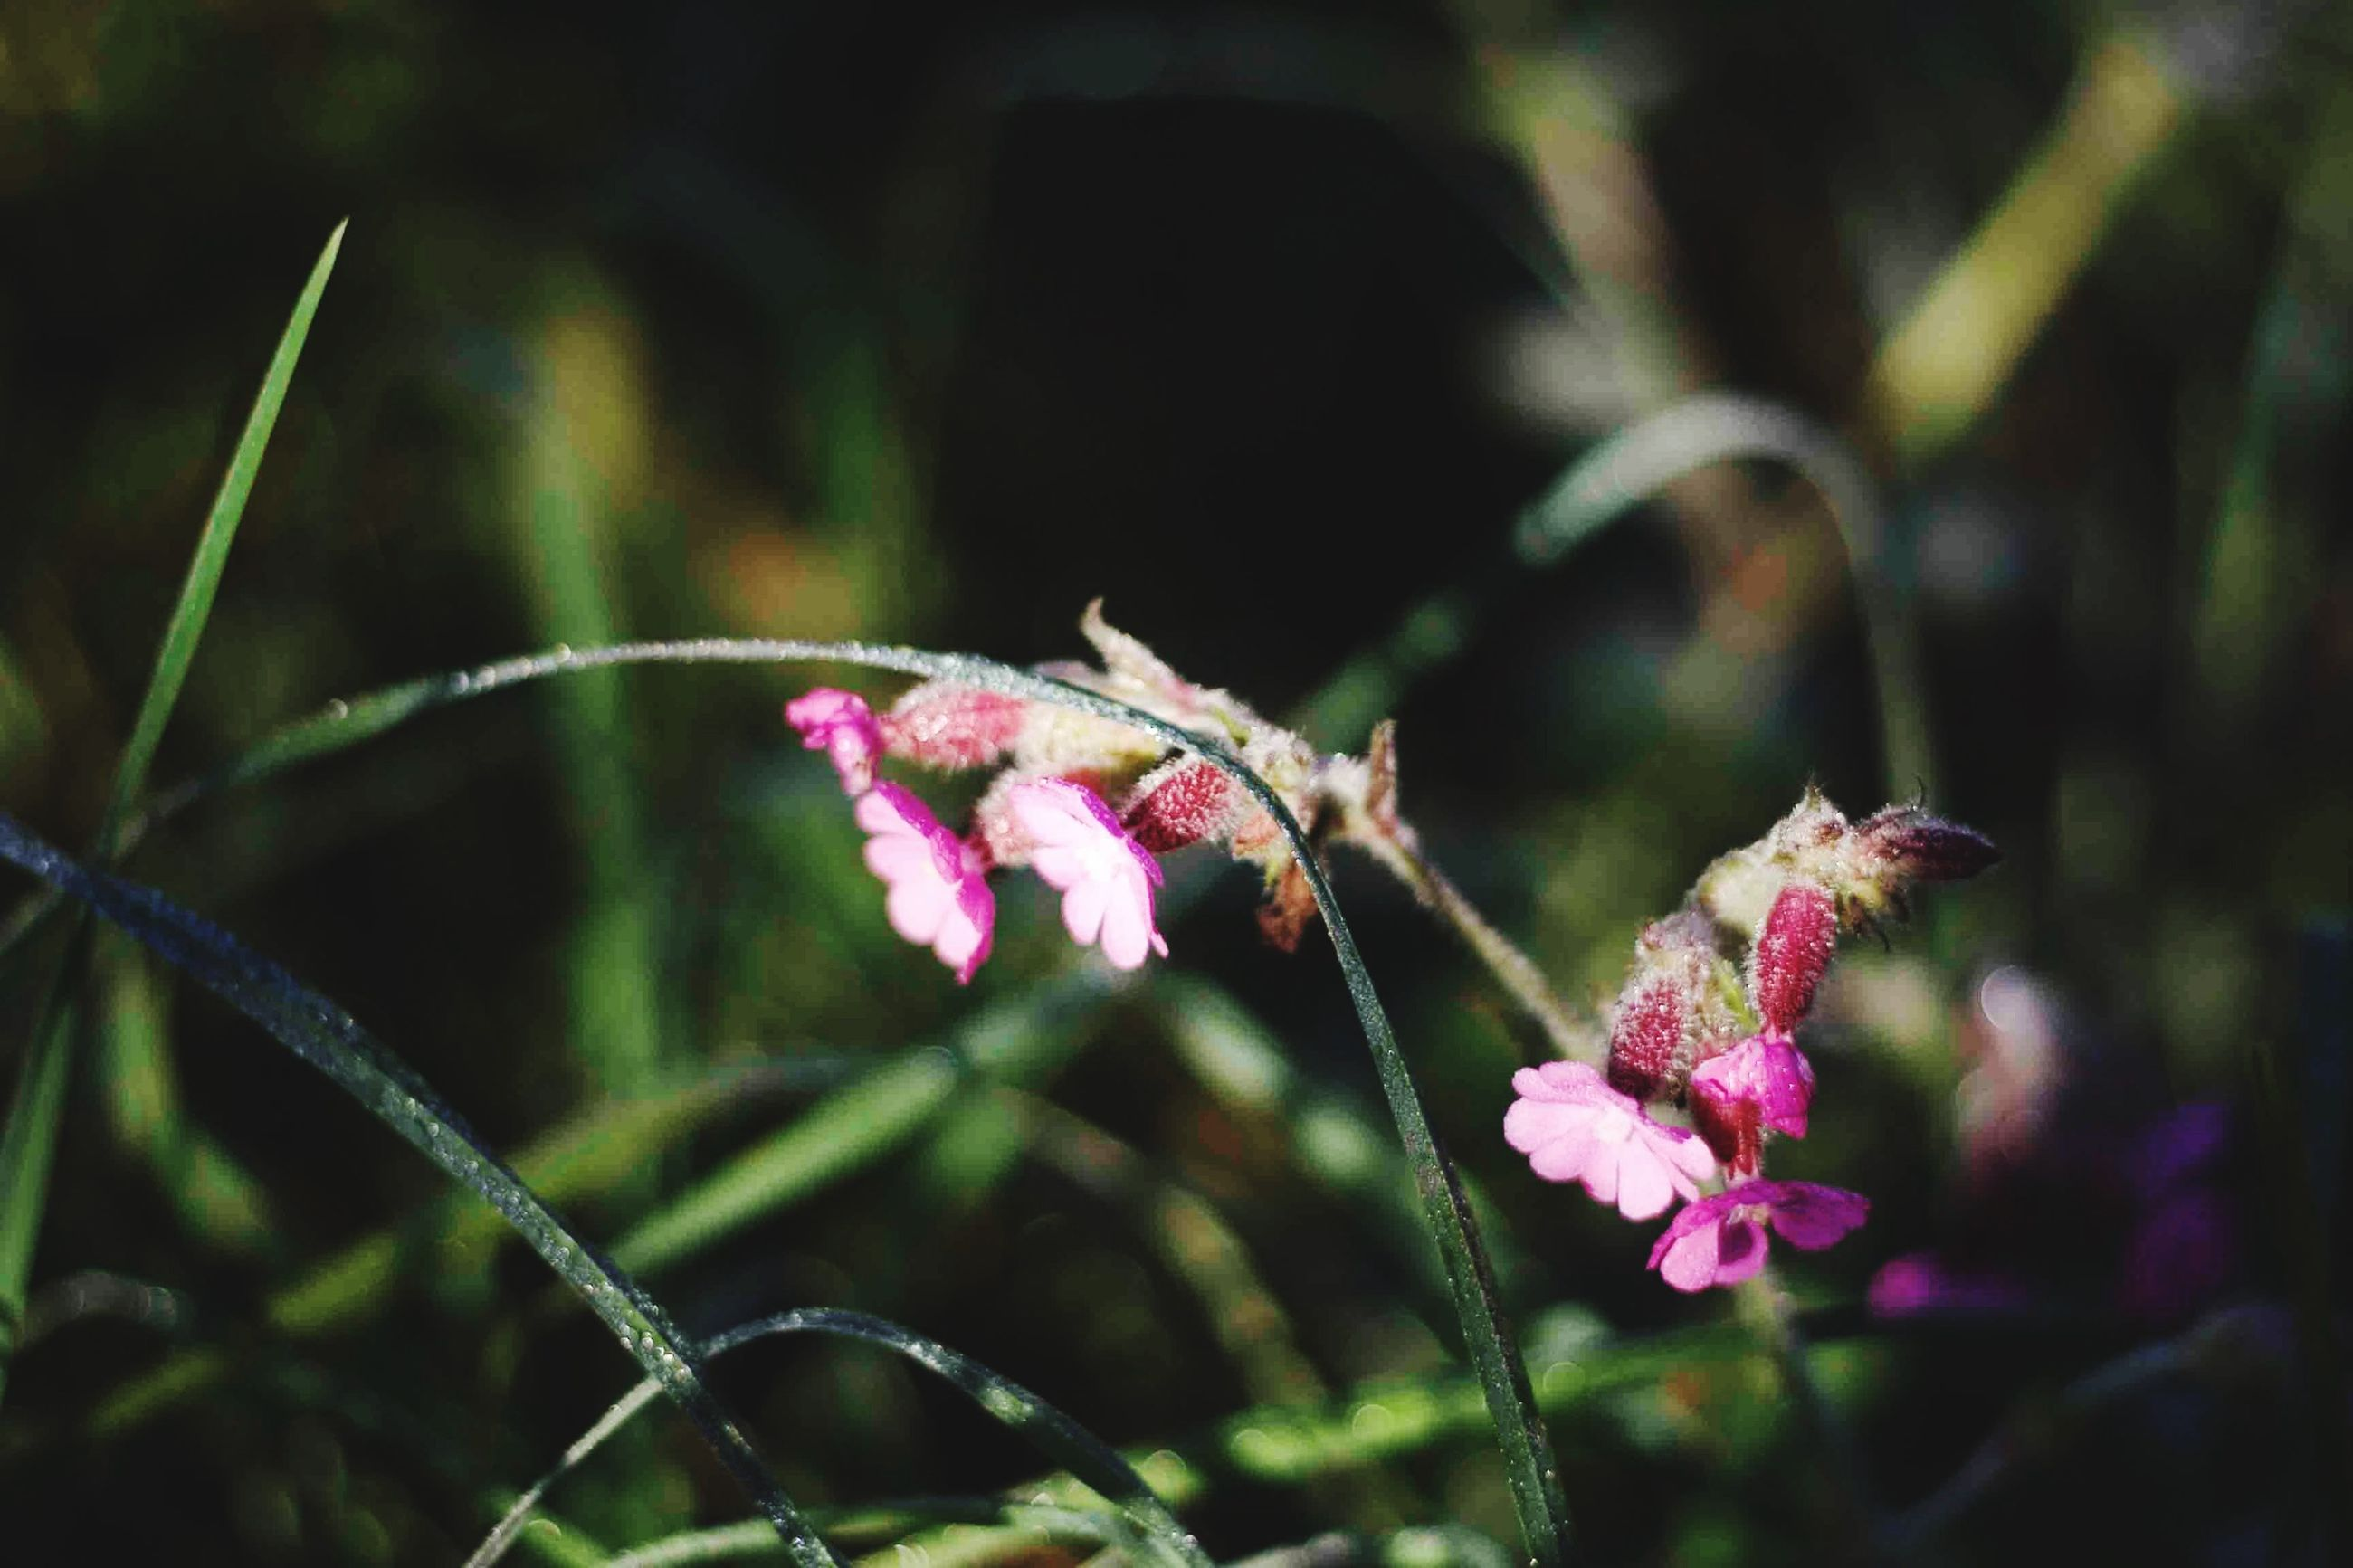 flower, freshness, fragility, focus on foreground, pink color, growth, close-up, beauty in nature, plant, purple, stem, nature, petal, flower head, one animal, animal themes, insect, blooming, selective focus, outdoors